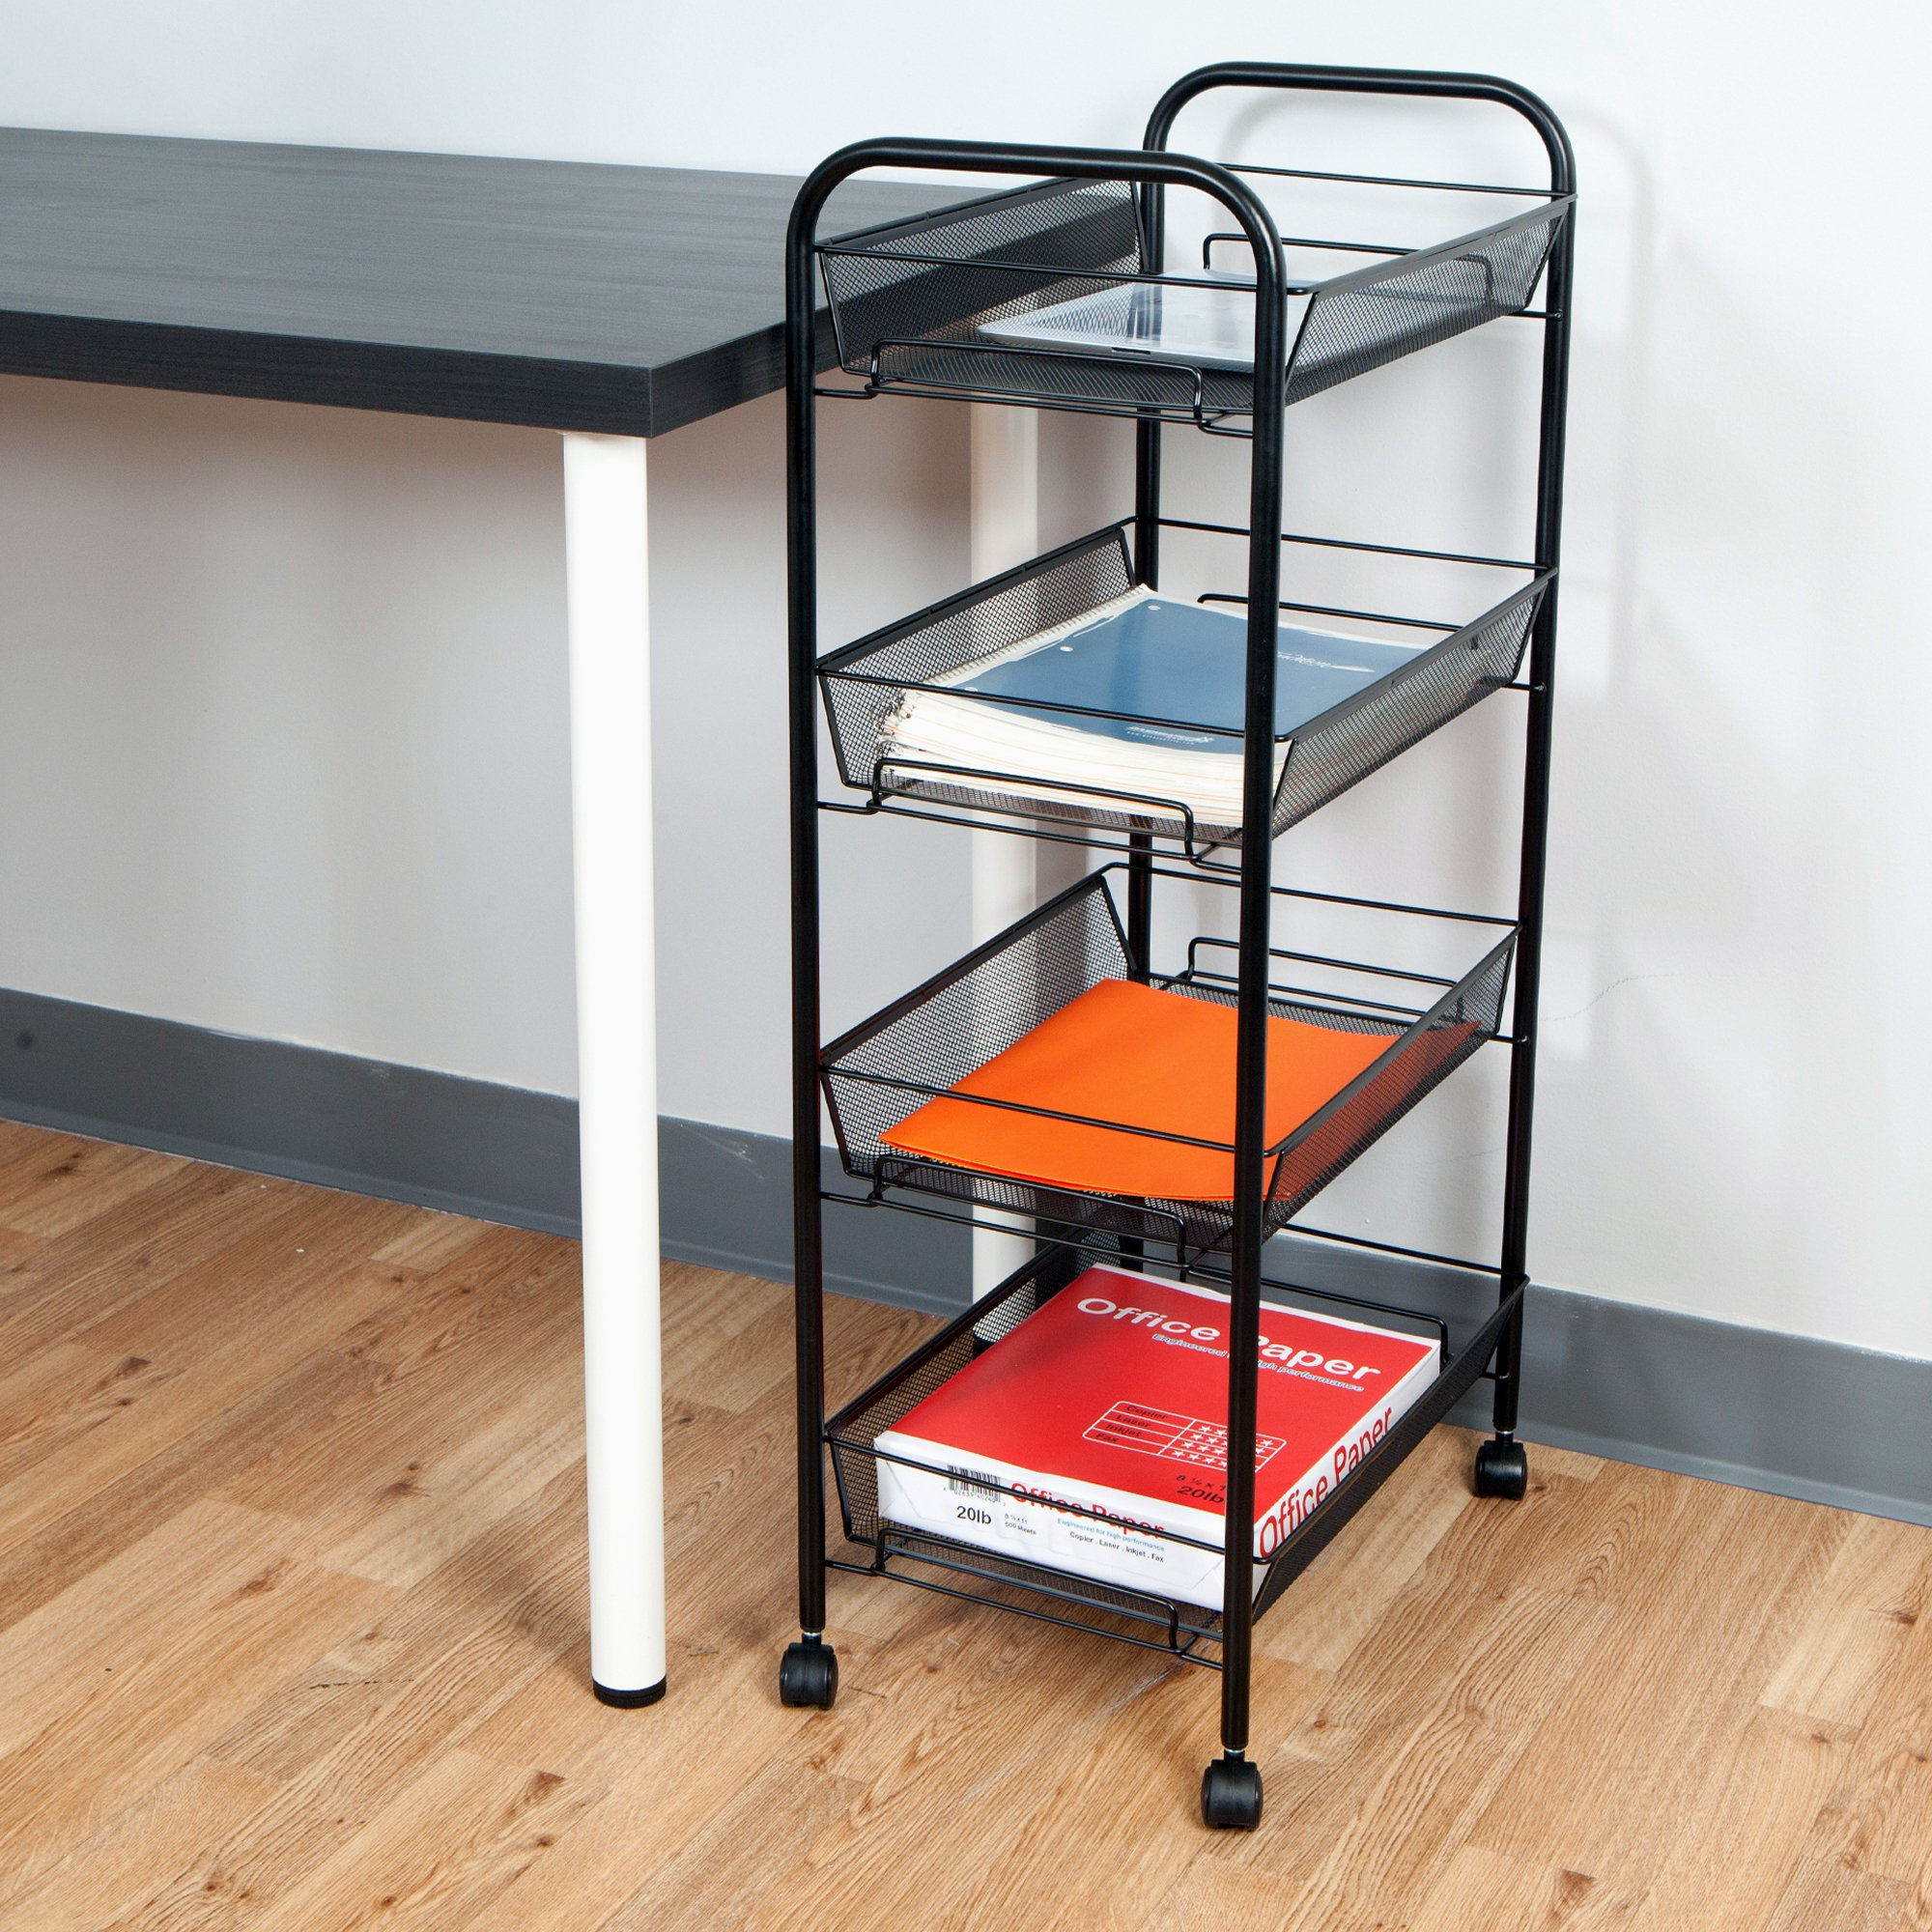 Mind Reader Metal 4 Tier all-Purpose Utility Cart, Black by Mind Reader (Image #2)